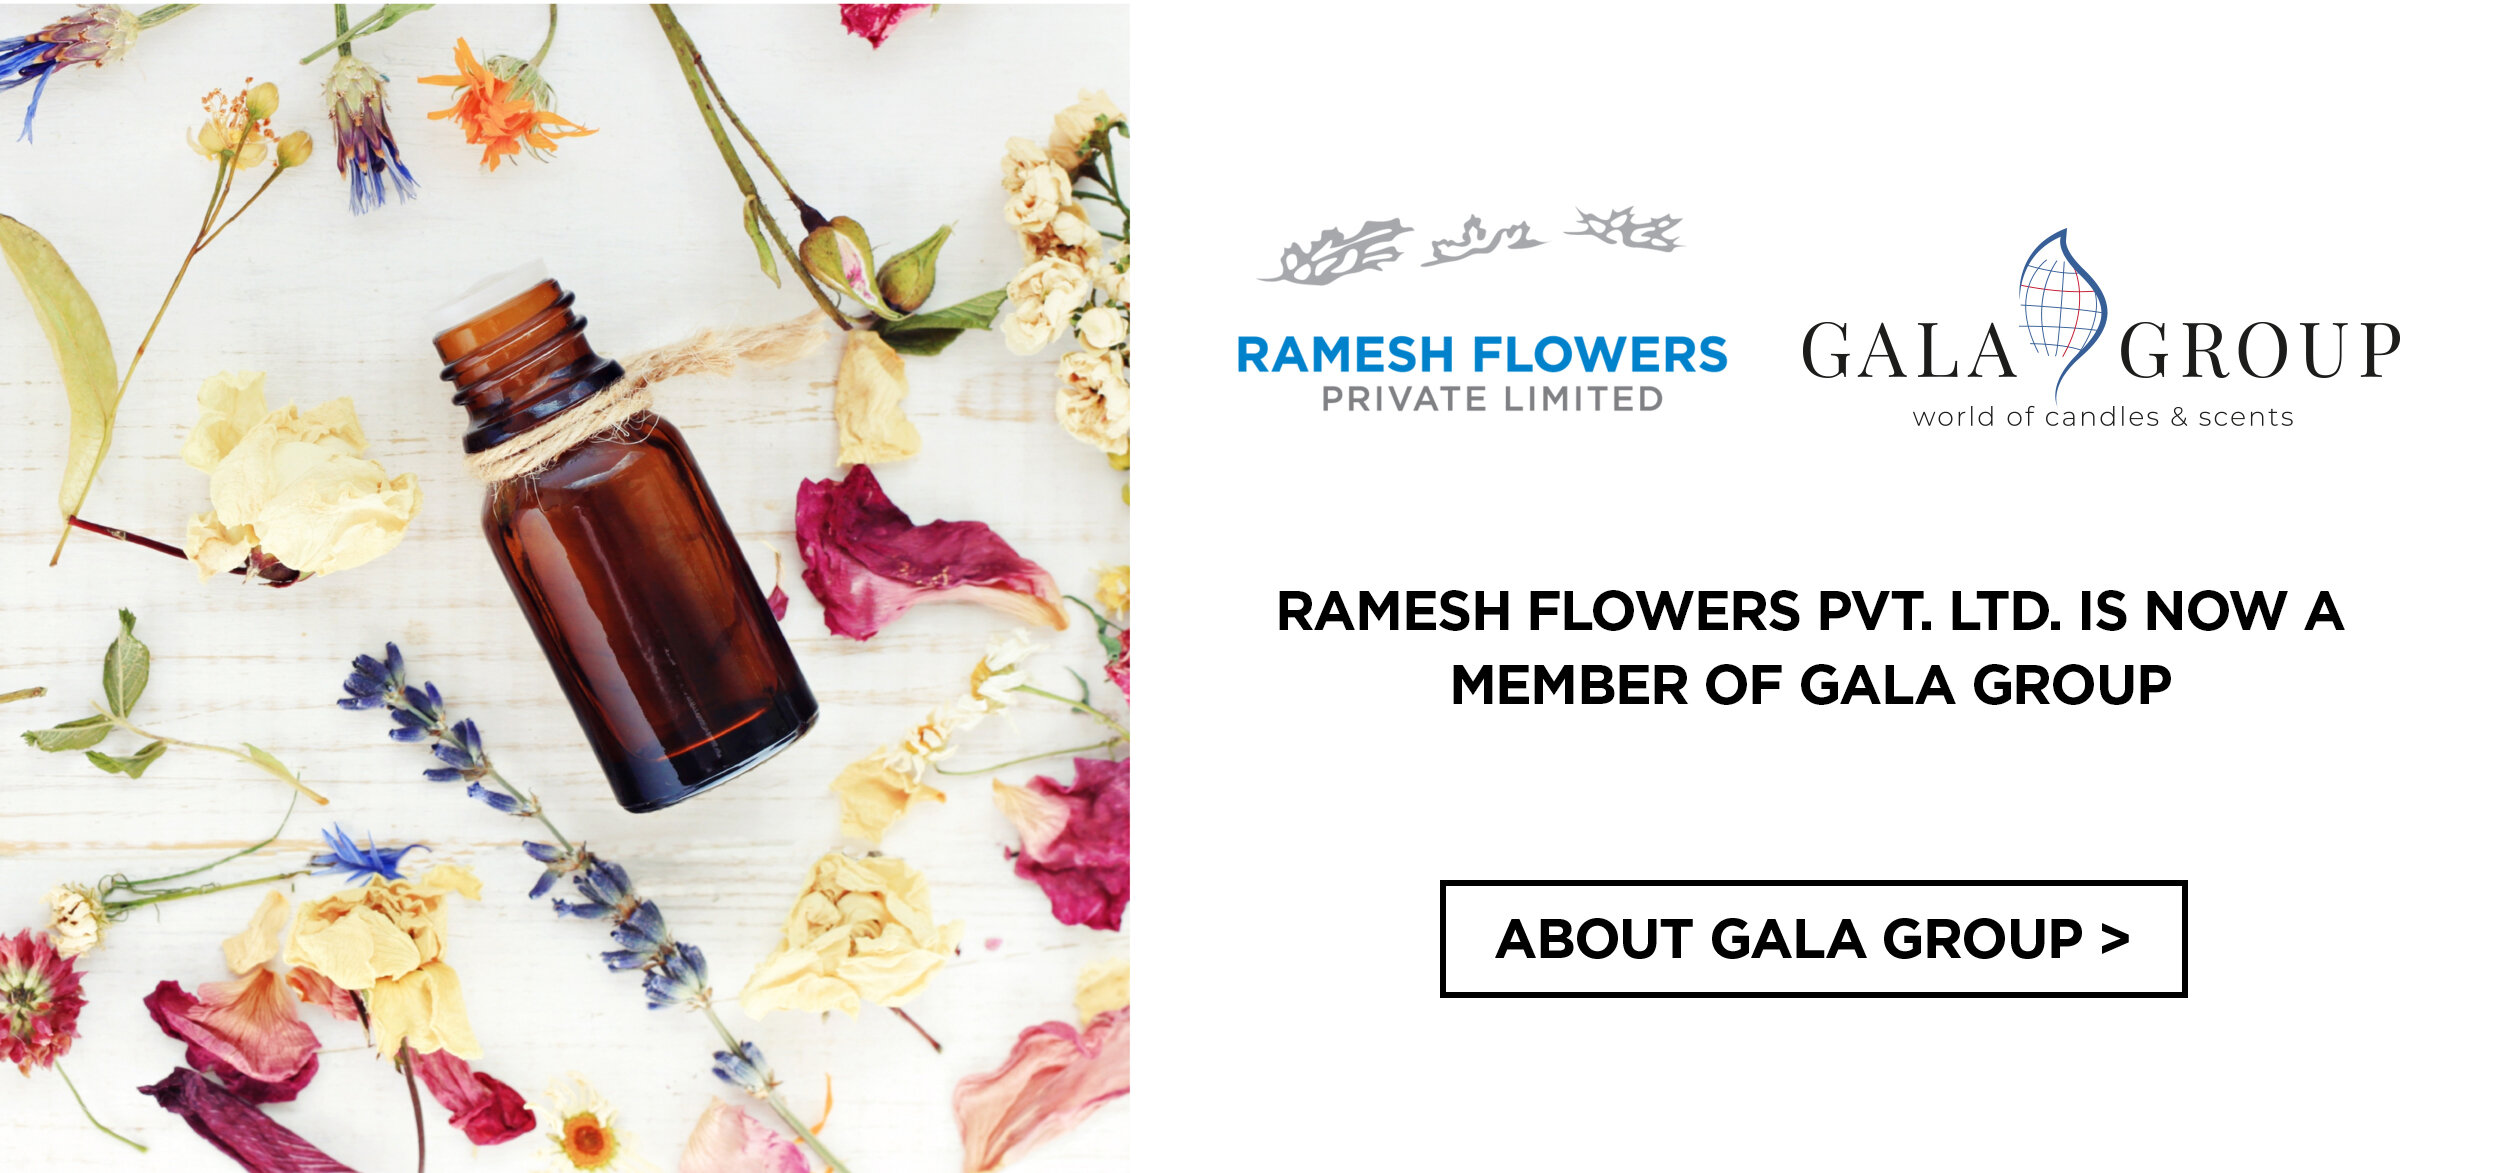 ramesh-flowers-gala-group.jpg